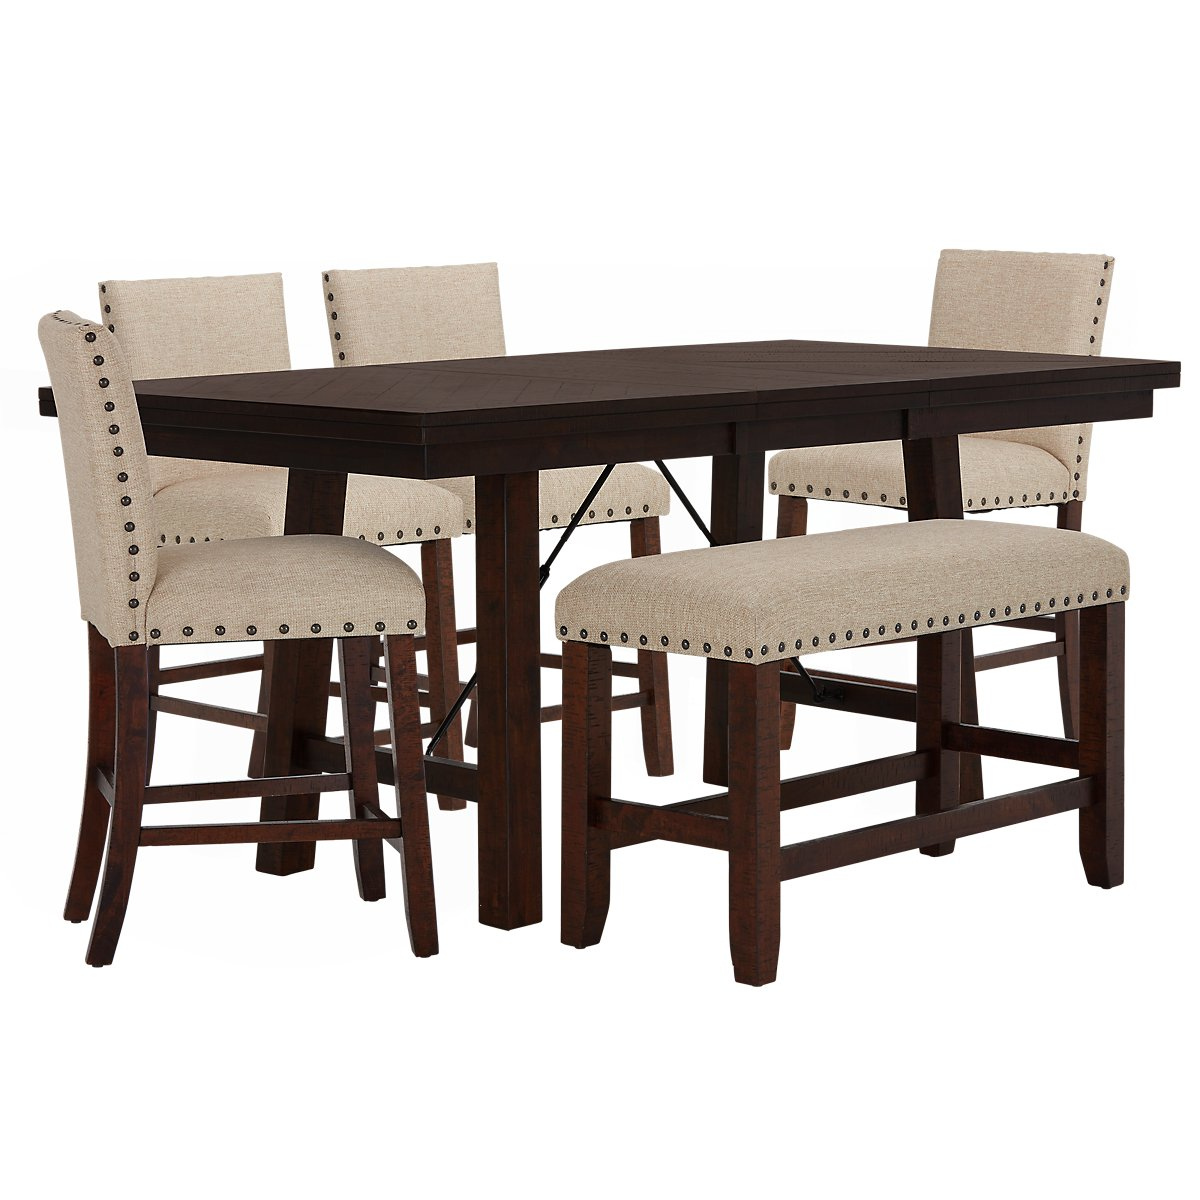 City Furniture Jax Beige High Table 4 Barstools High Bench